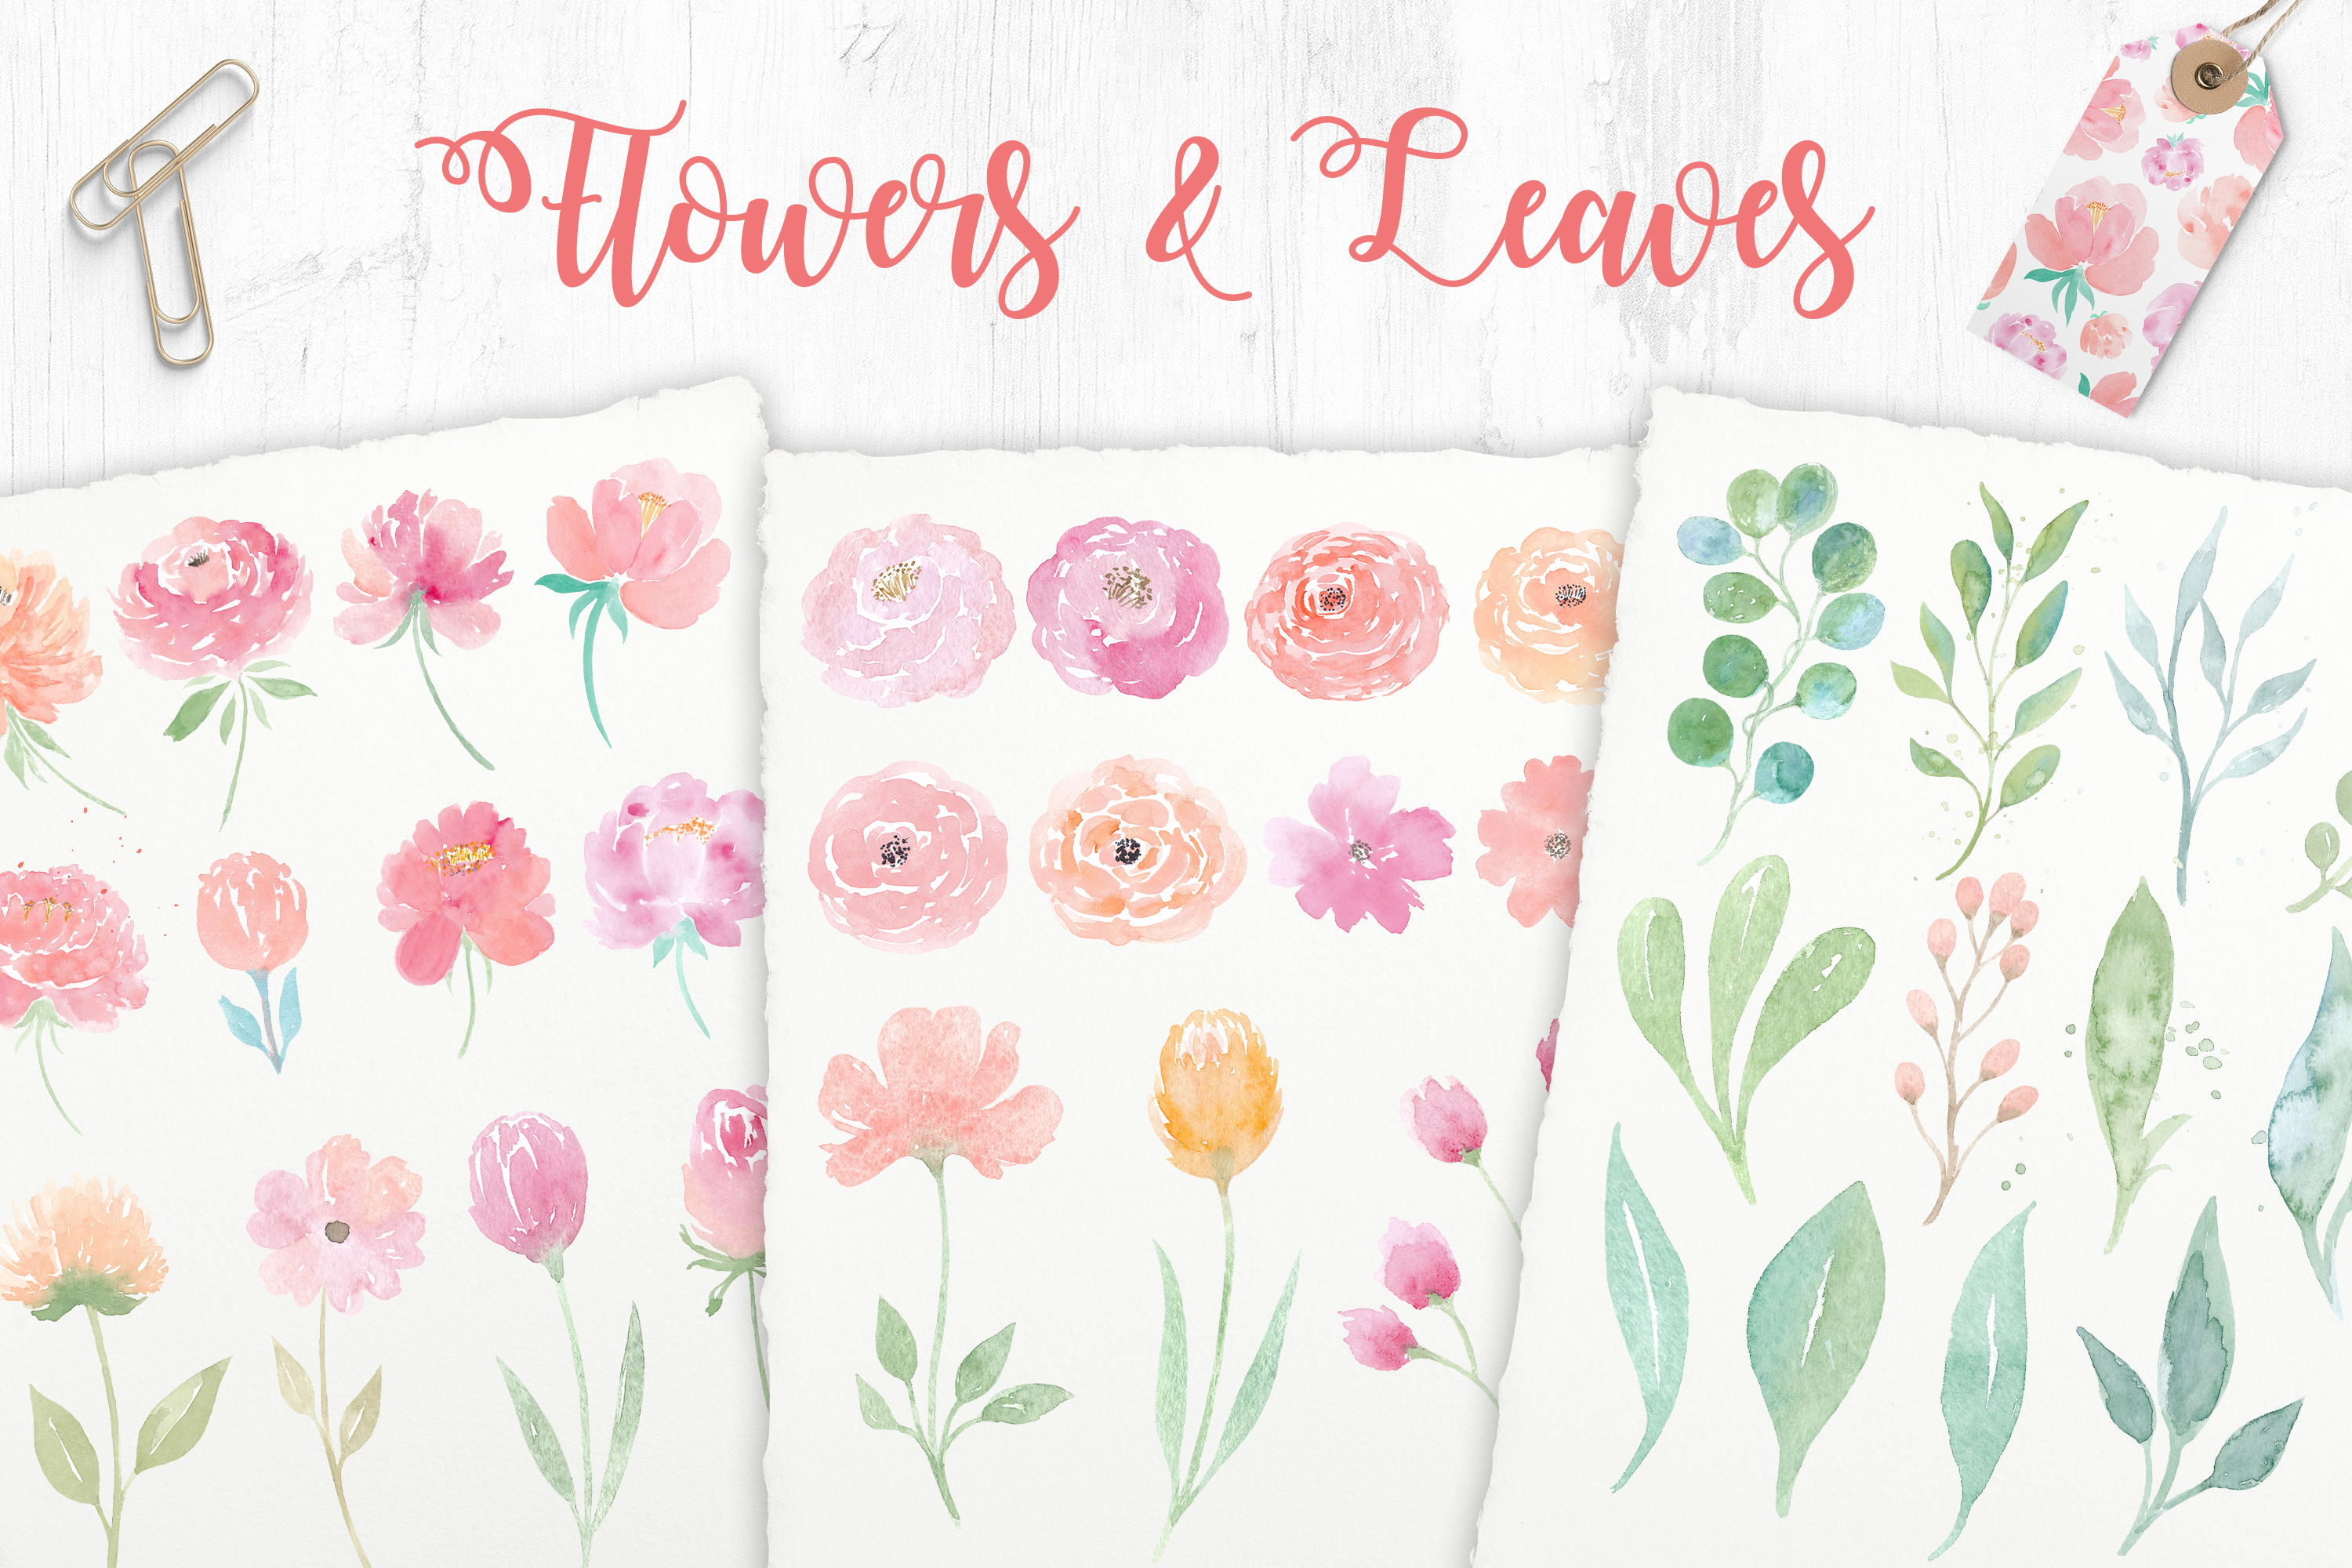 Watercolor Wedding Clipart. Flowers & Textures example image 2